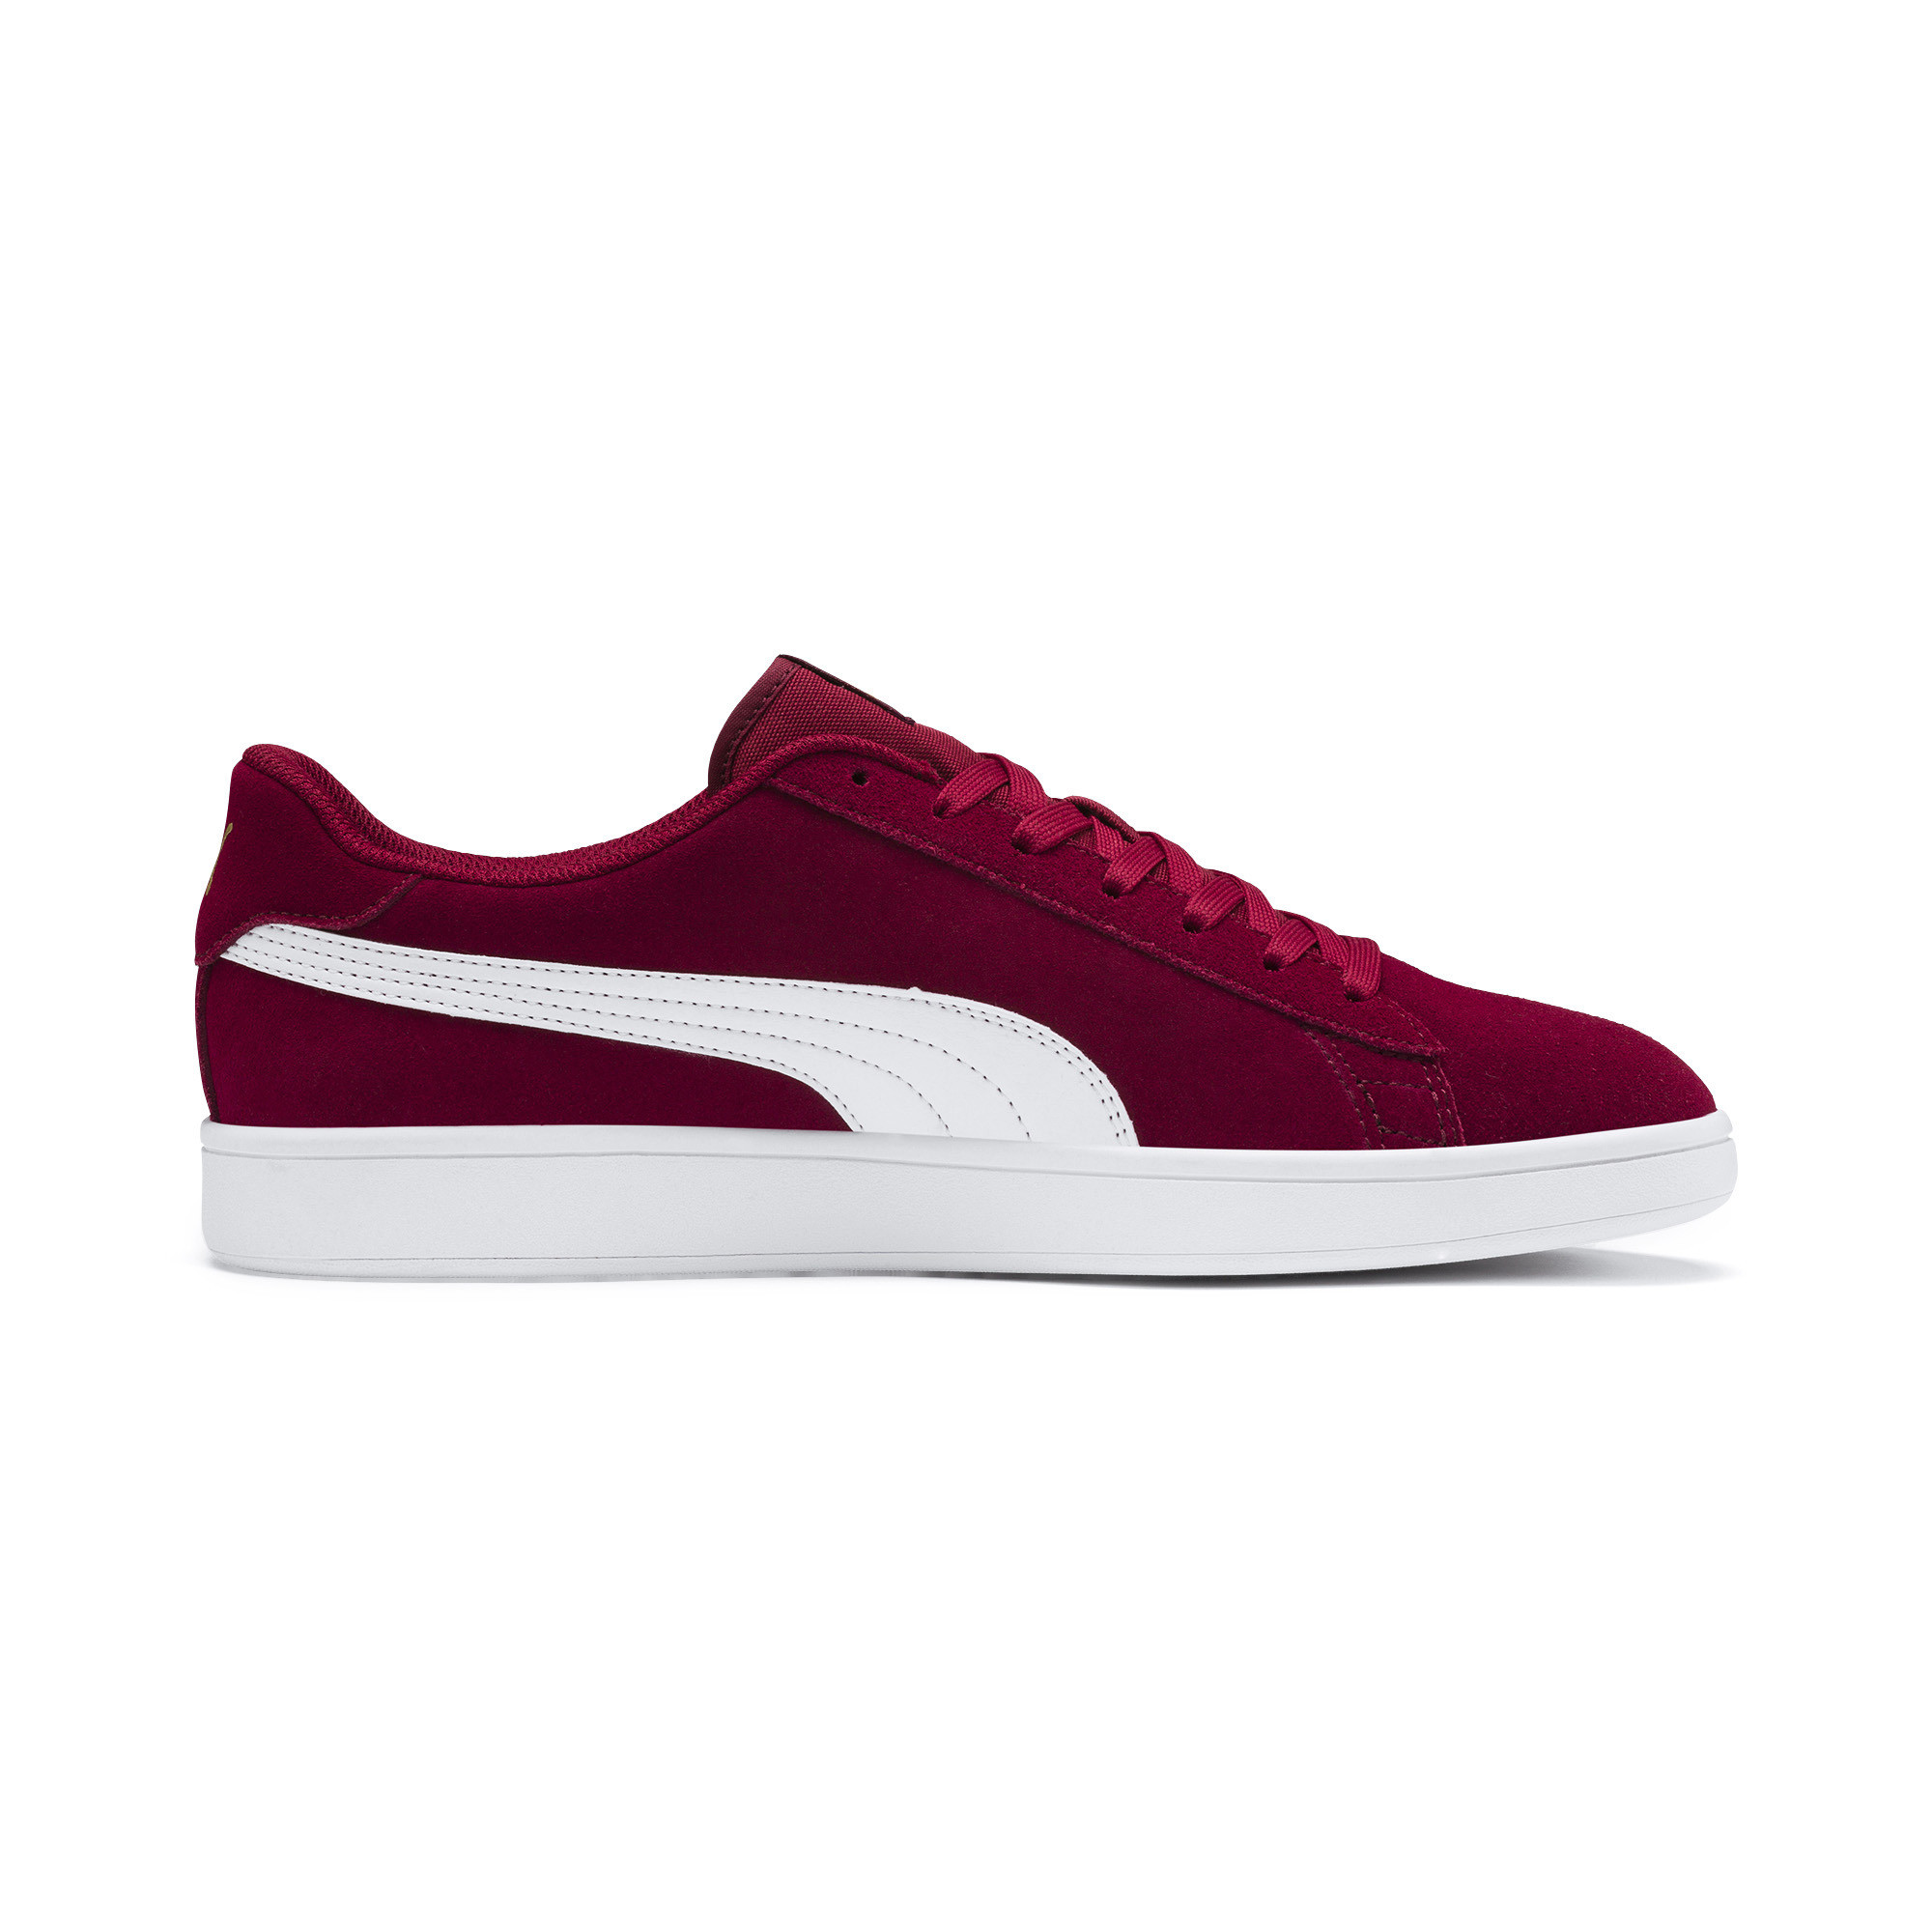 PUMA-PUMA-Smash-v2-Men-039-s-Sneakers-Men-Shoe-Basics thumbnail 50